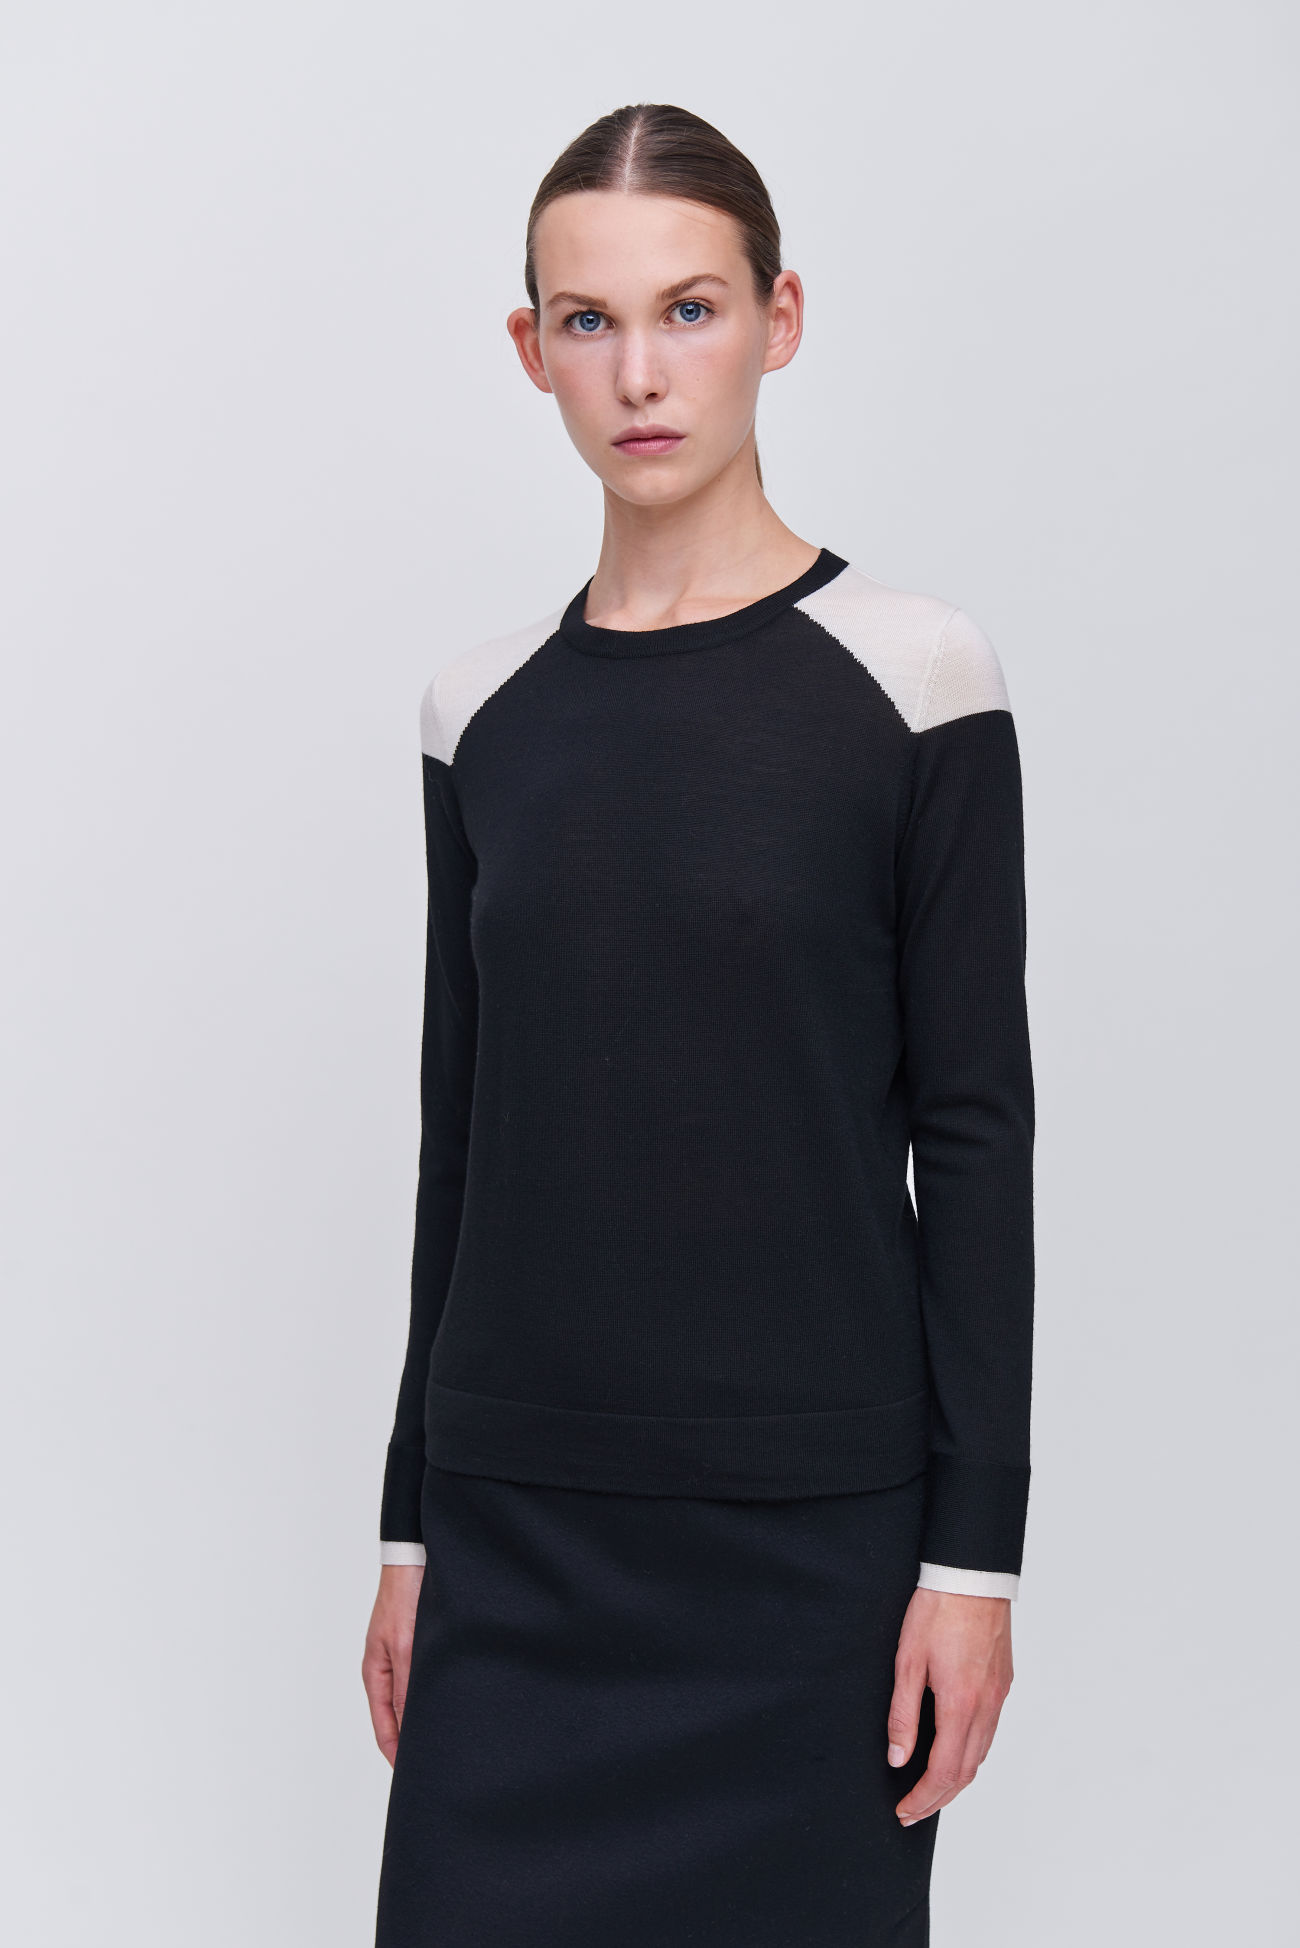 Sweater with black and white effects